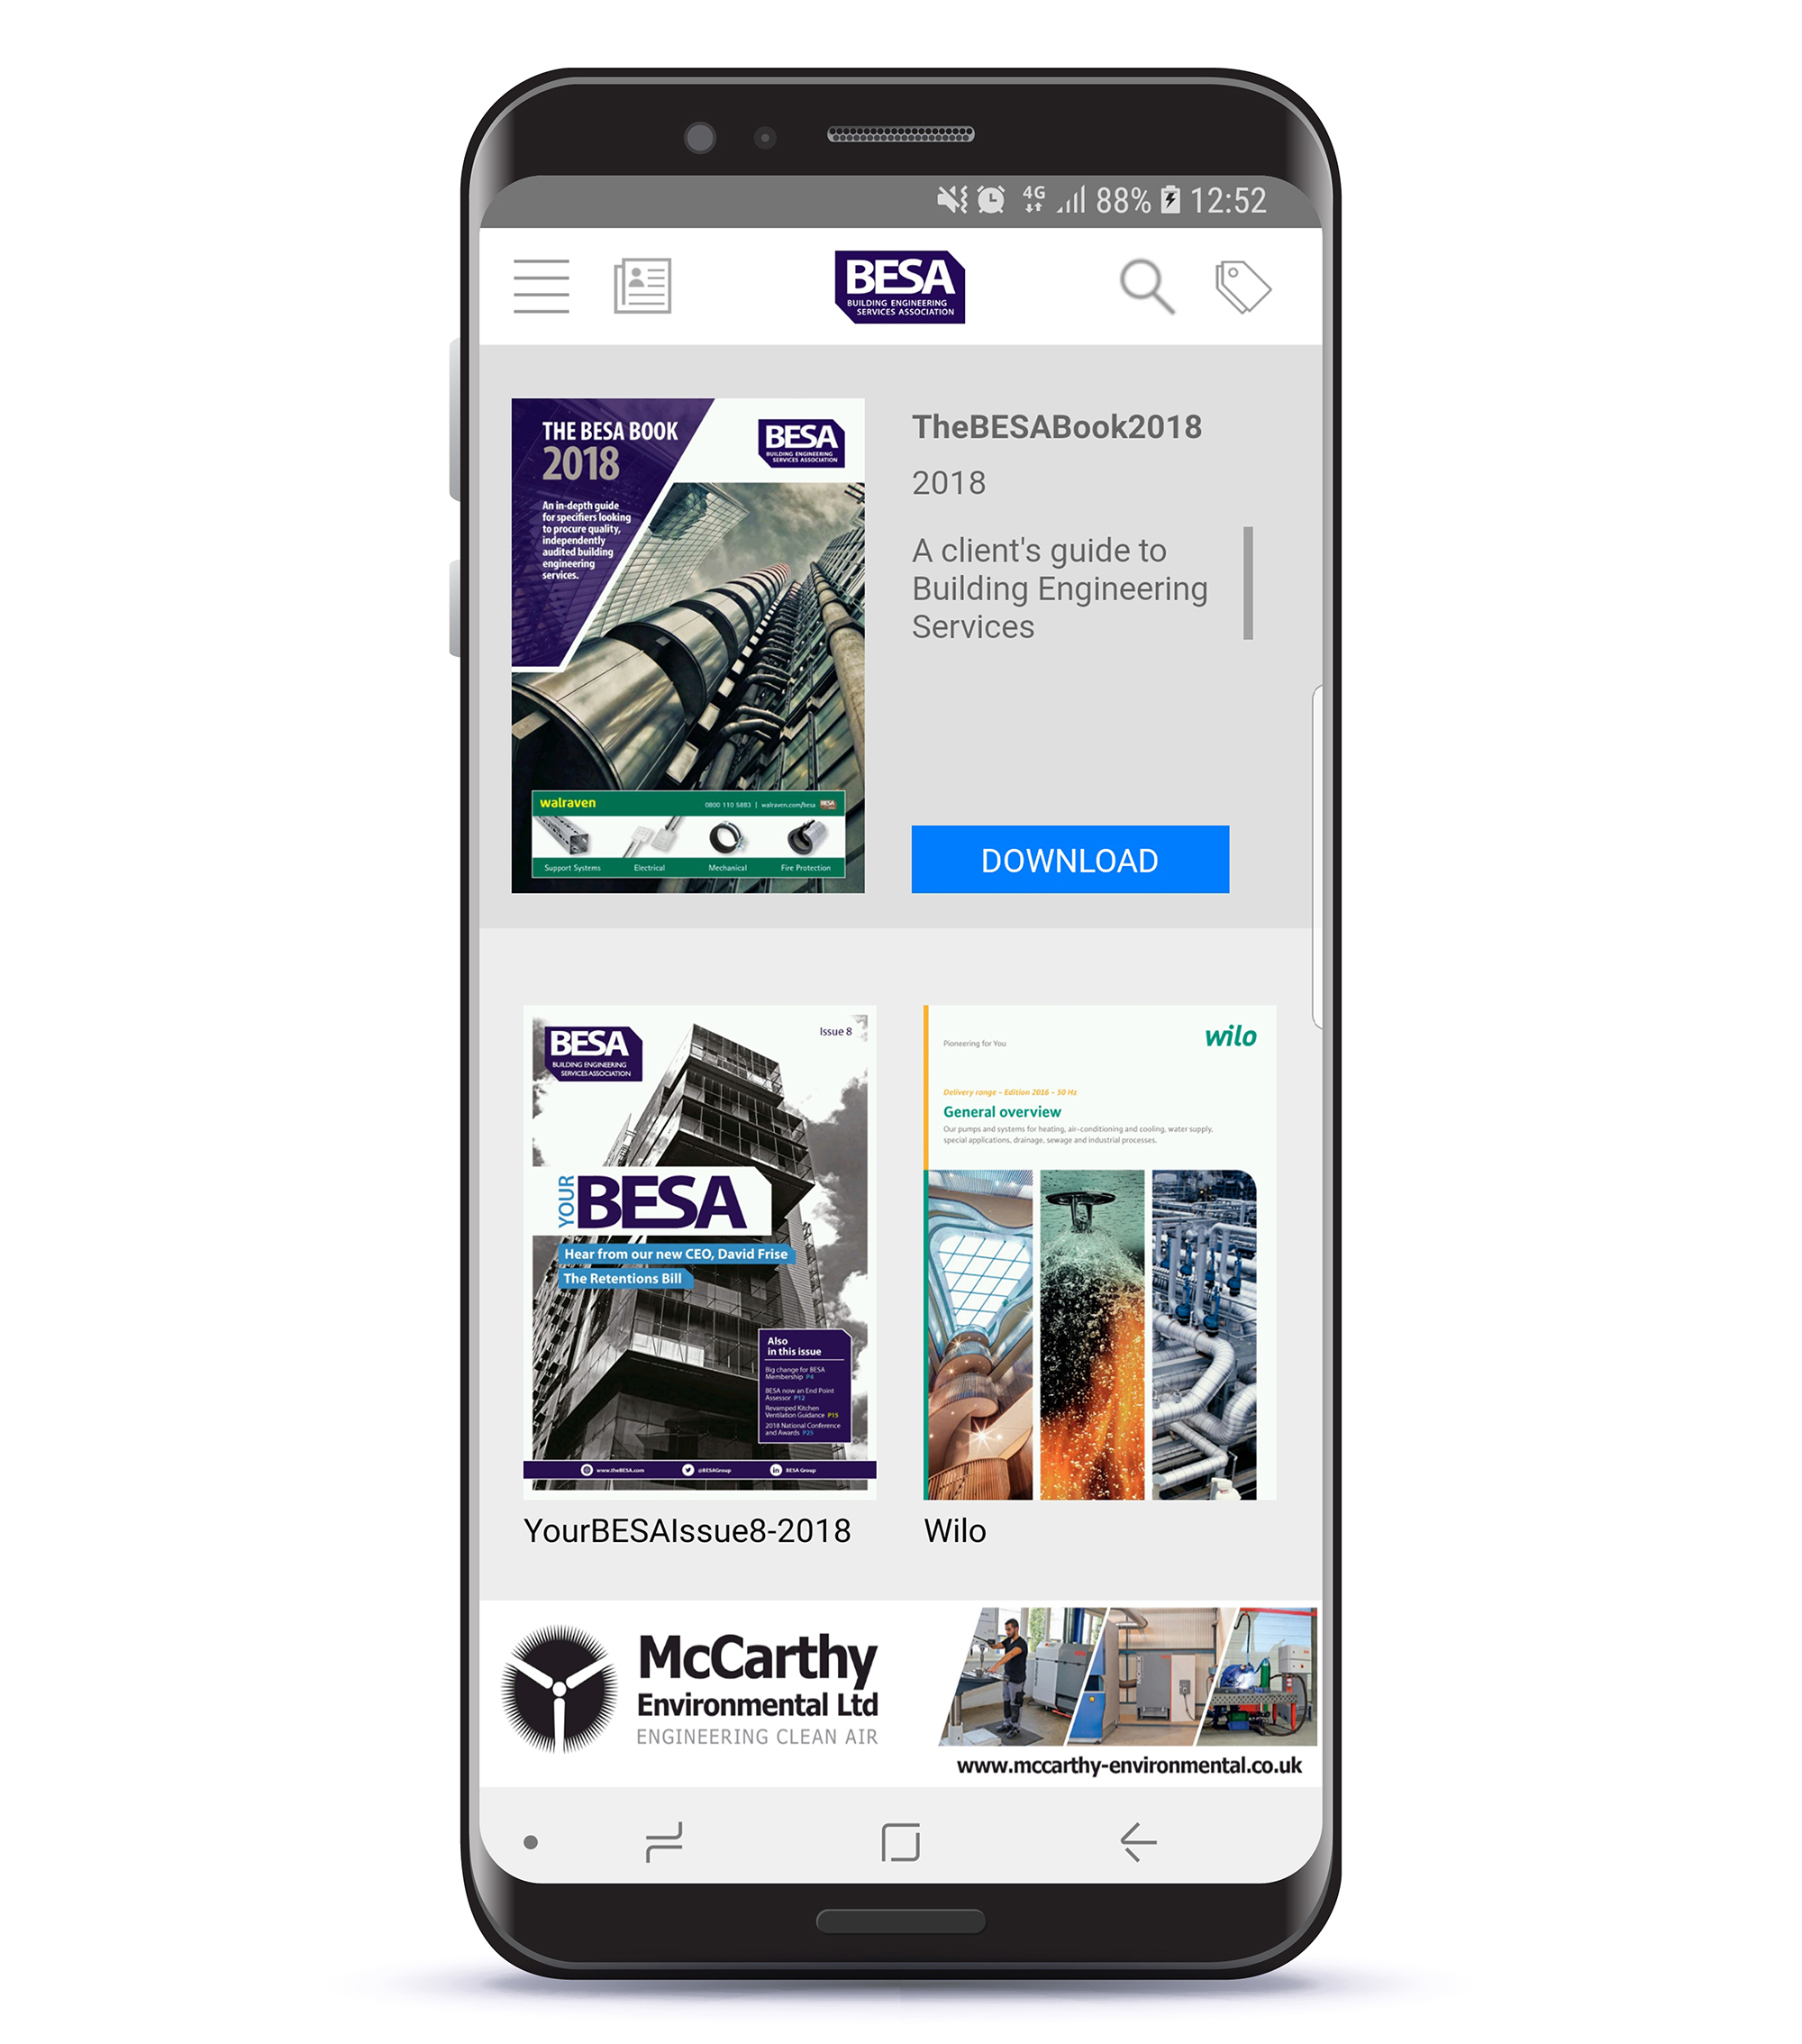 BESA Digital - web/app and newsletter